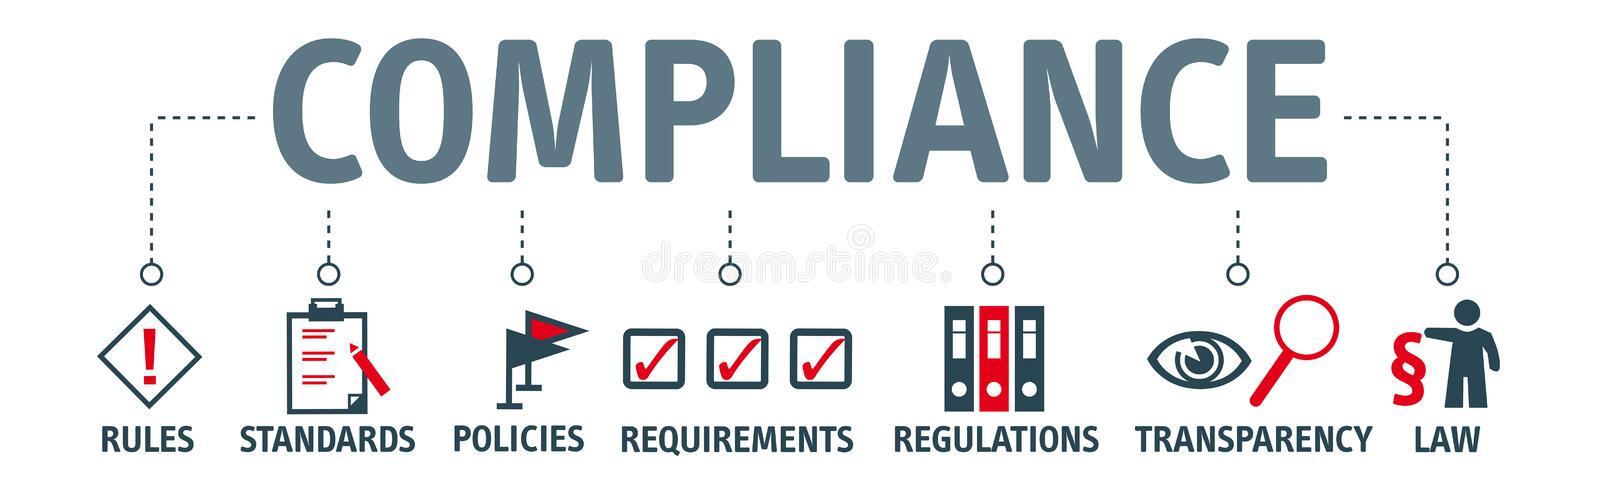 Banner compliance concept vector illustration